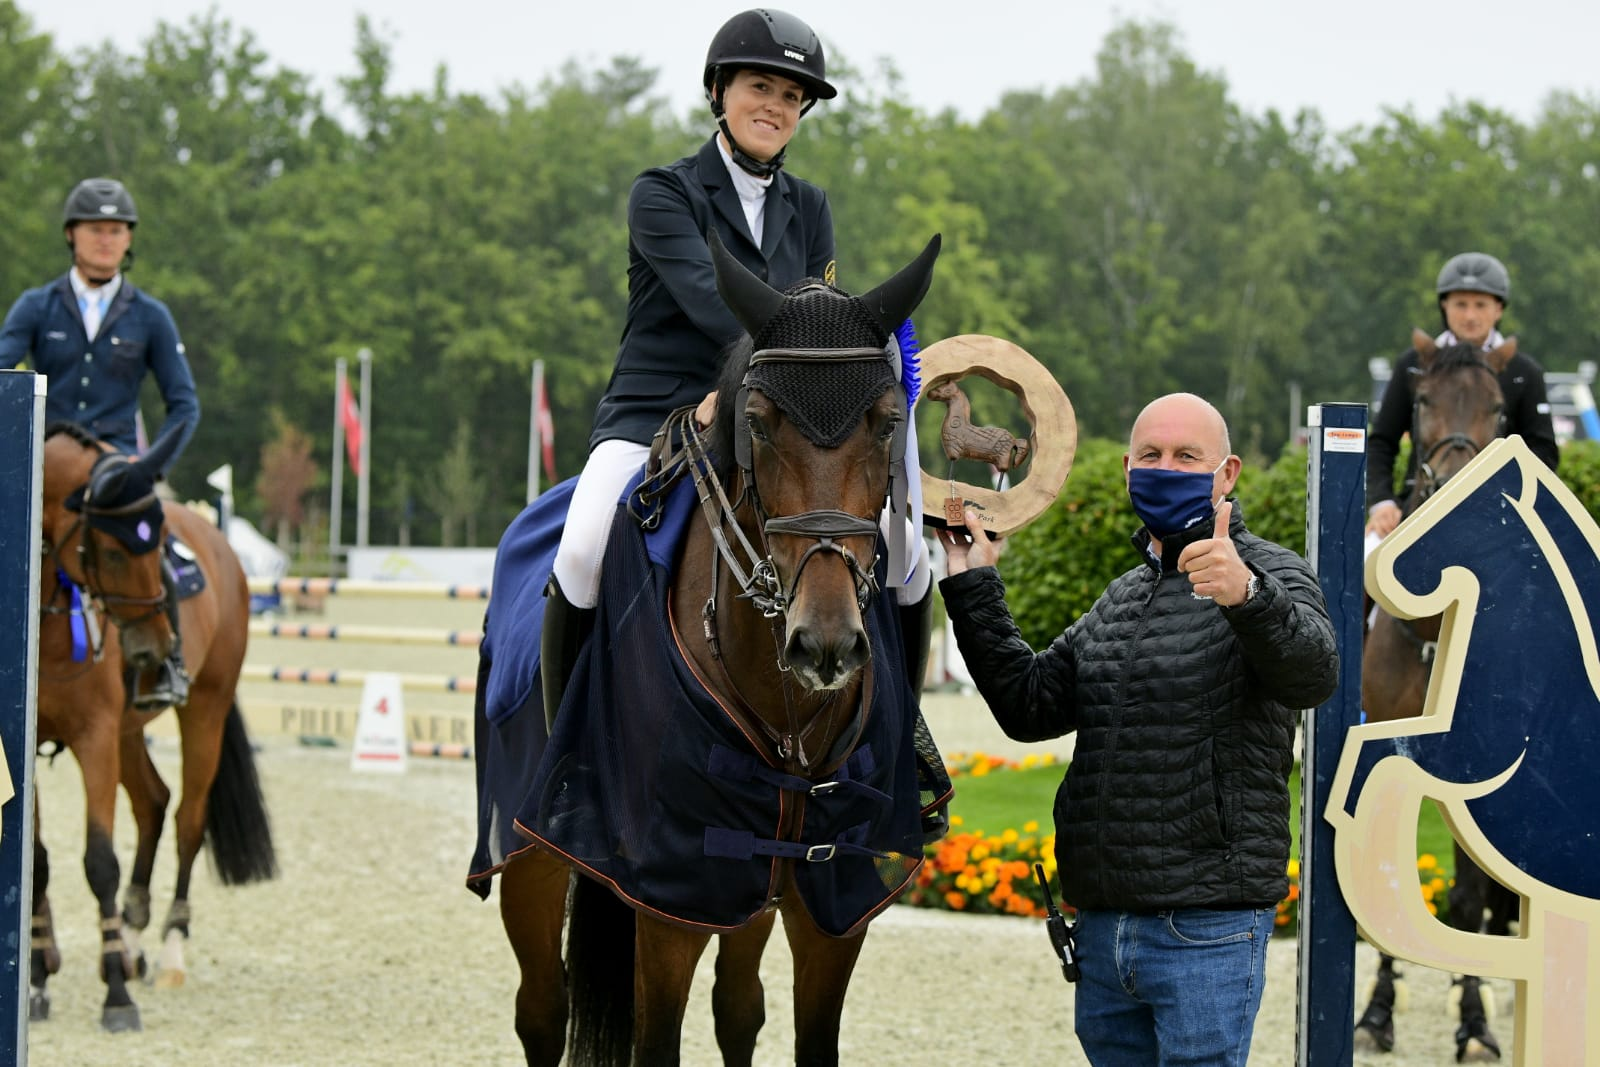 FEI gives new guidelines regarding prize giving ceremonies